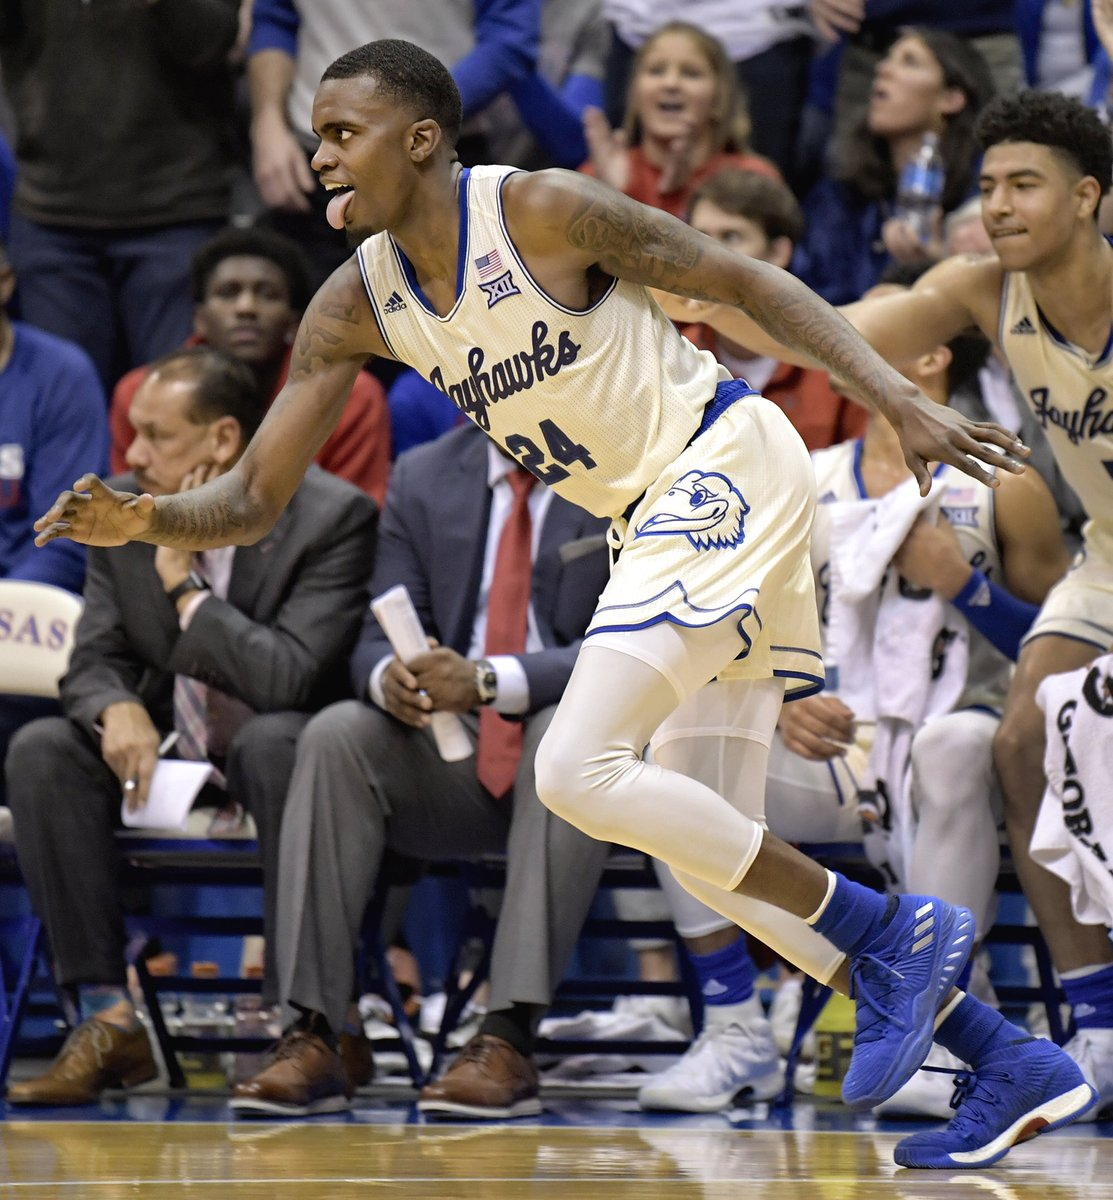 Coming off a historic night on Monday, there were no signs of slowing down from @Vicklovekicks   Gallery:  http:// kuathne.ws/2KapTtB  &nbsp;   #KUbball<br>http://pic.twitter.com/jttFmPyDL9